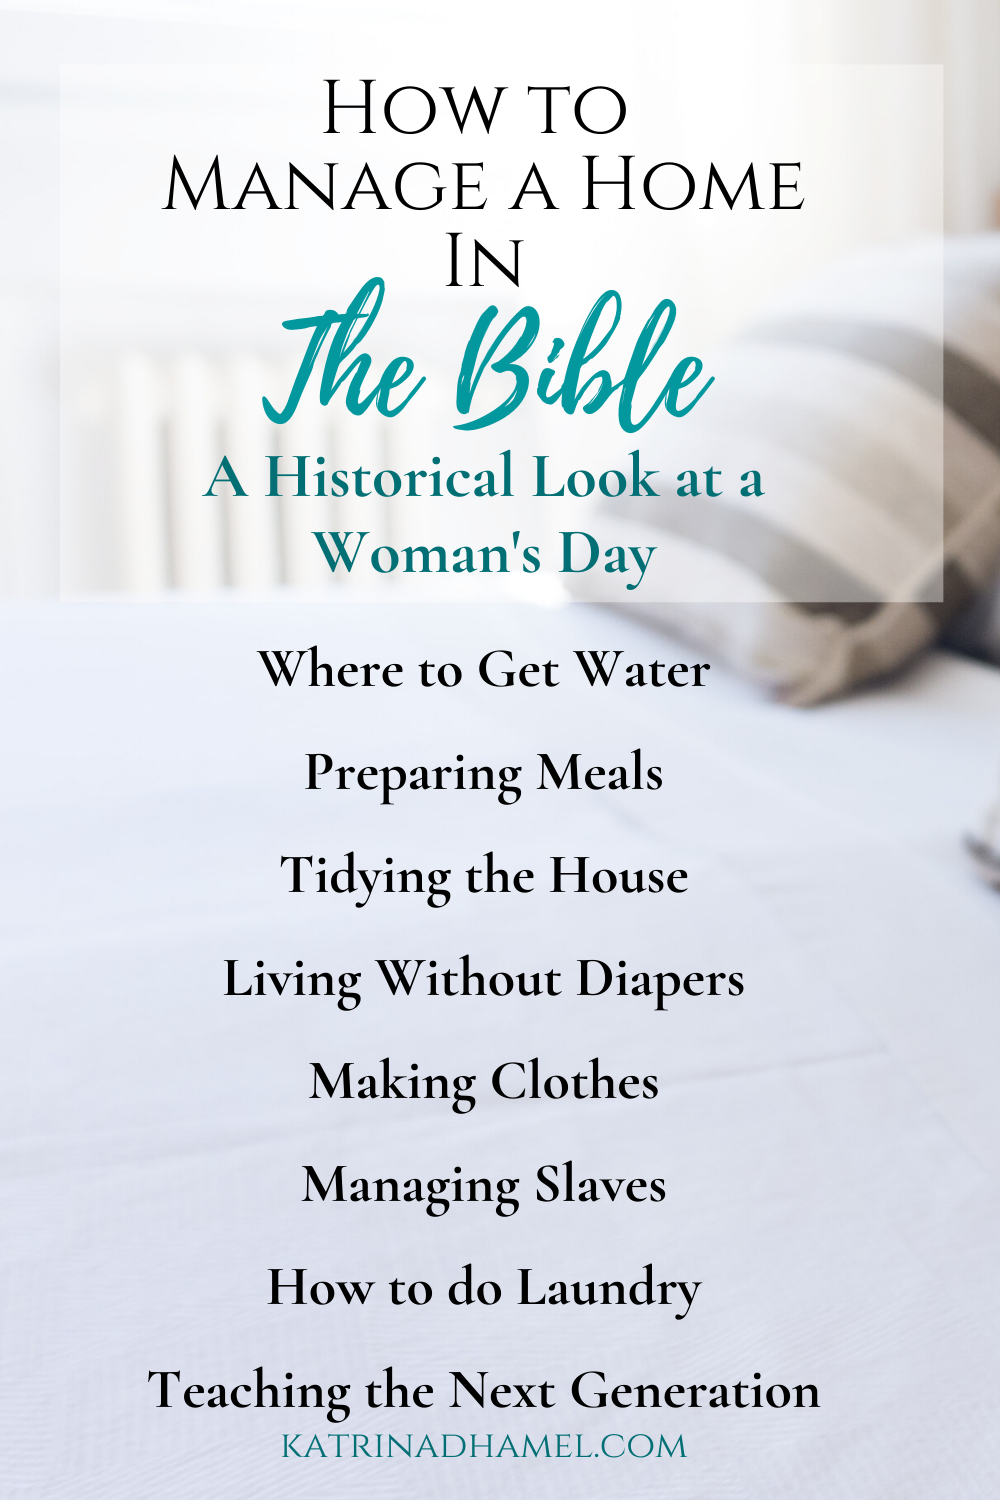 Striped pillows on a white bed and the text 'How to Manage a Home in the Bible, A historical look at a woman's day'